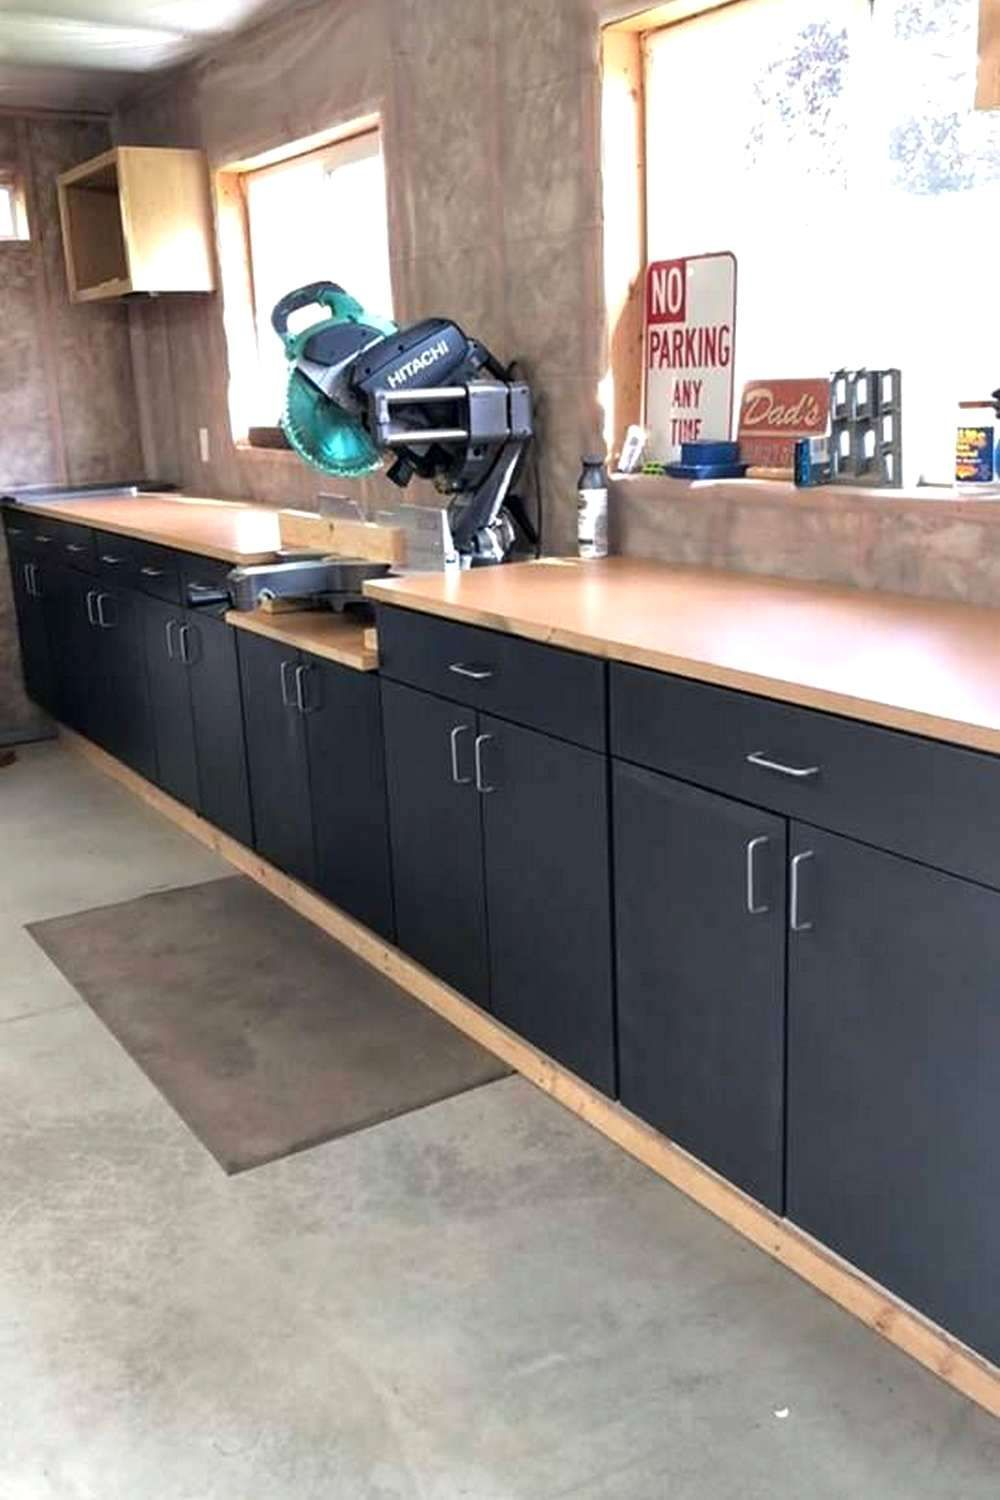 10 Nice Kitchen Cabinets Used In Garage Near Me Garageworkshop This Is 10 Nice Kitchen Cabi In 2020 Garage Workshop Organization Workshop Organization Garage Workshop